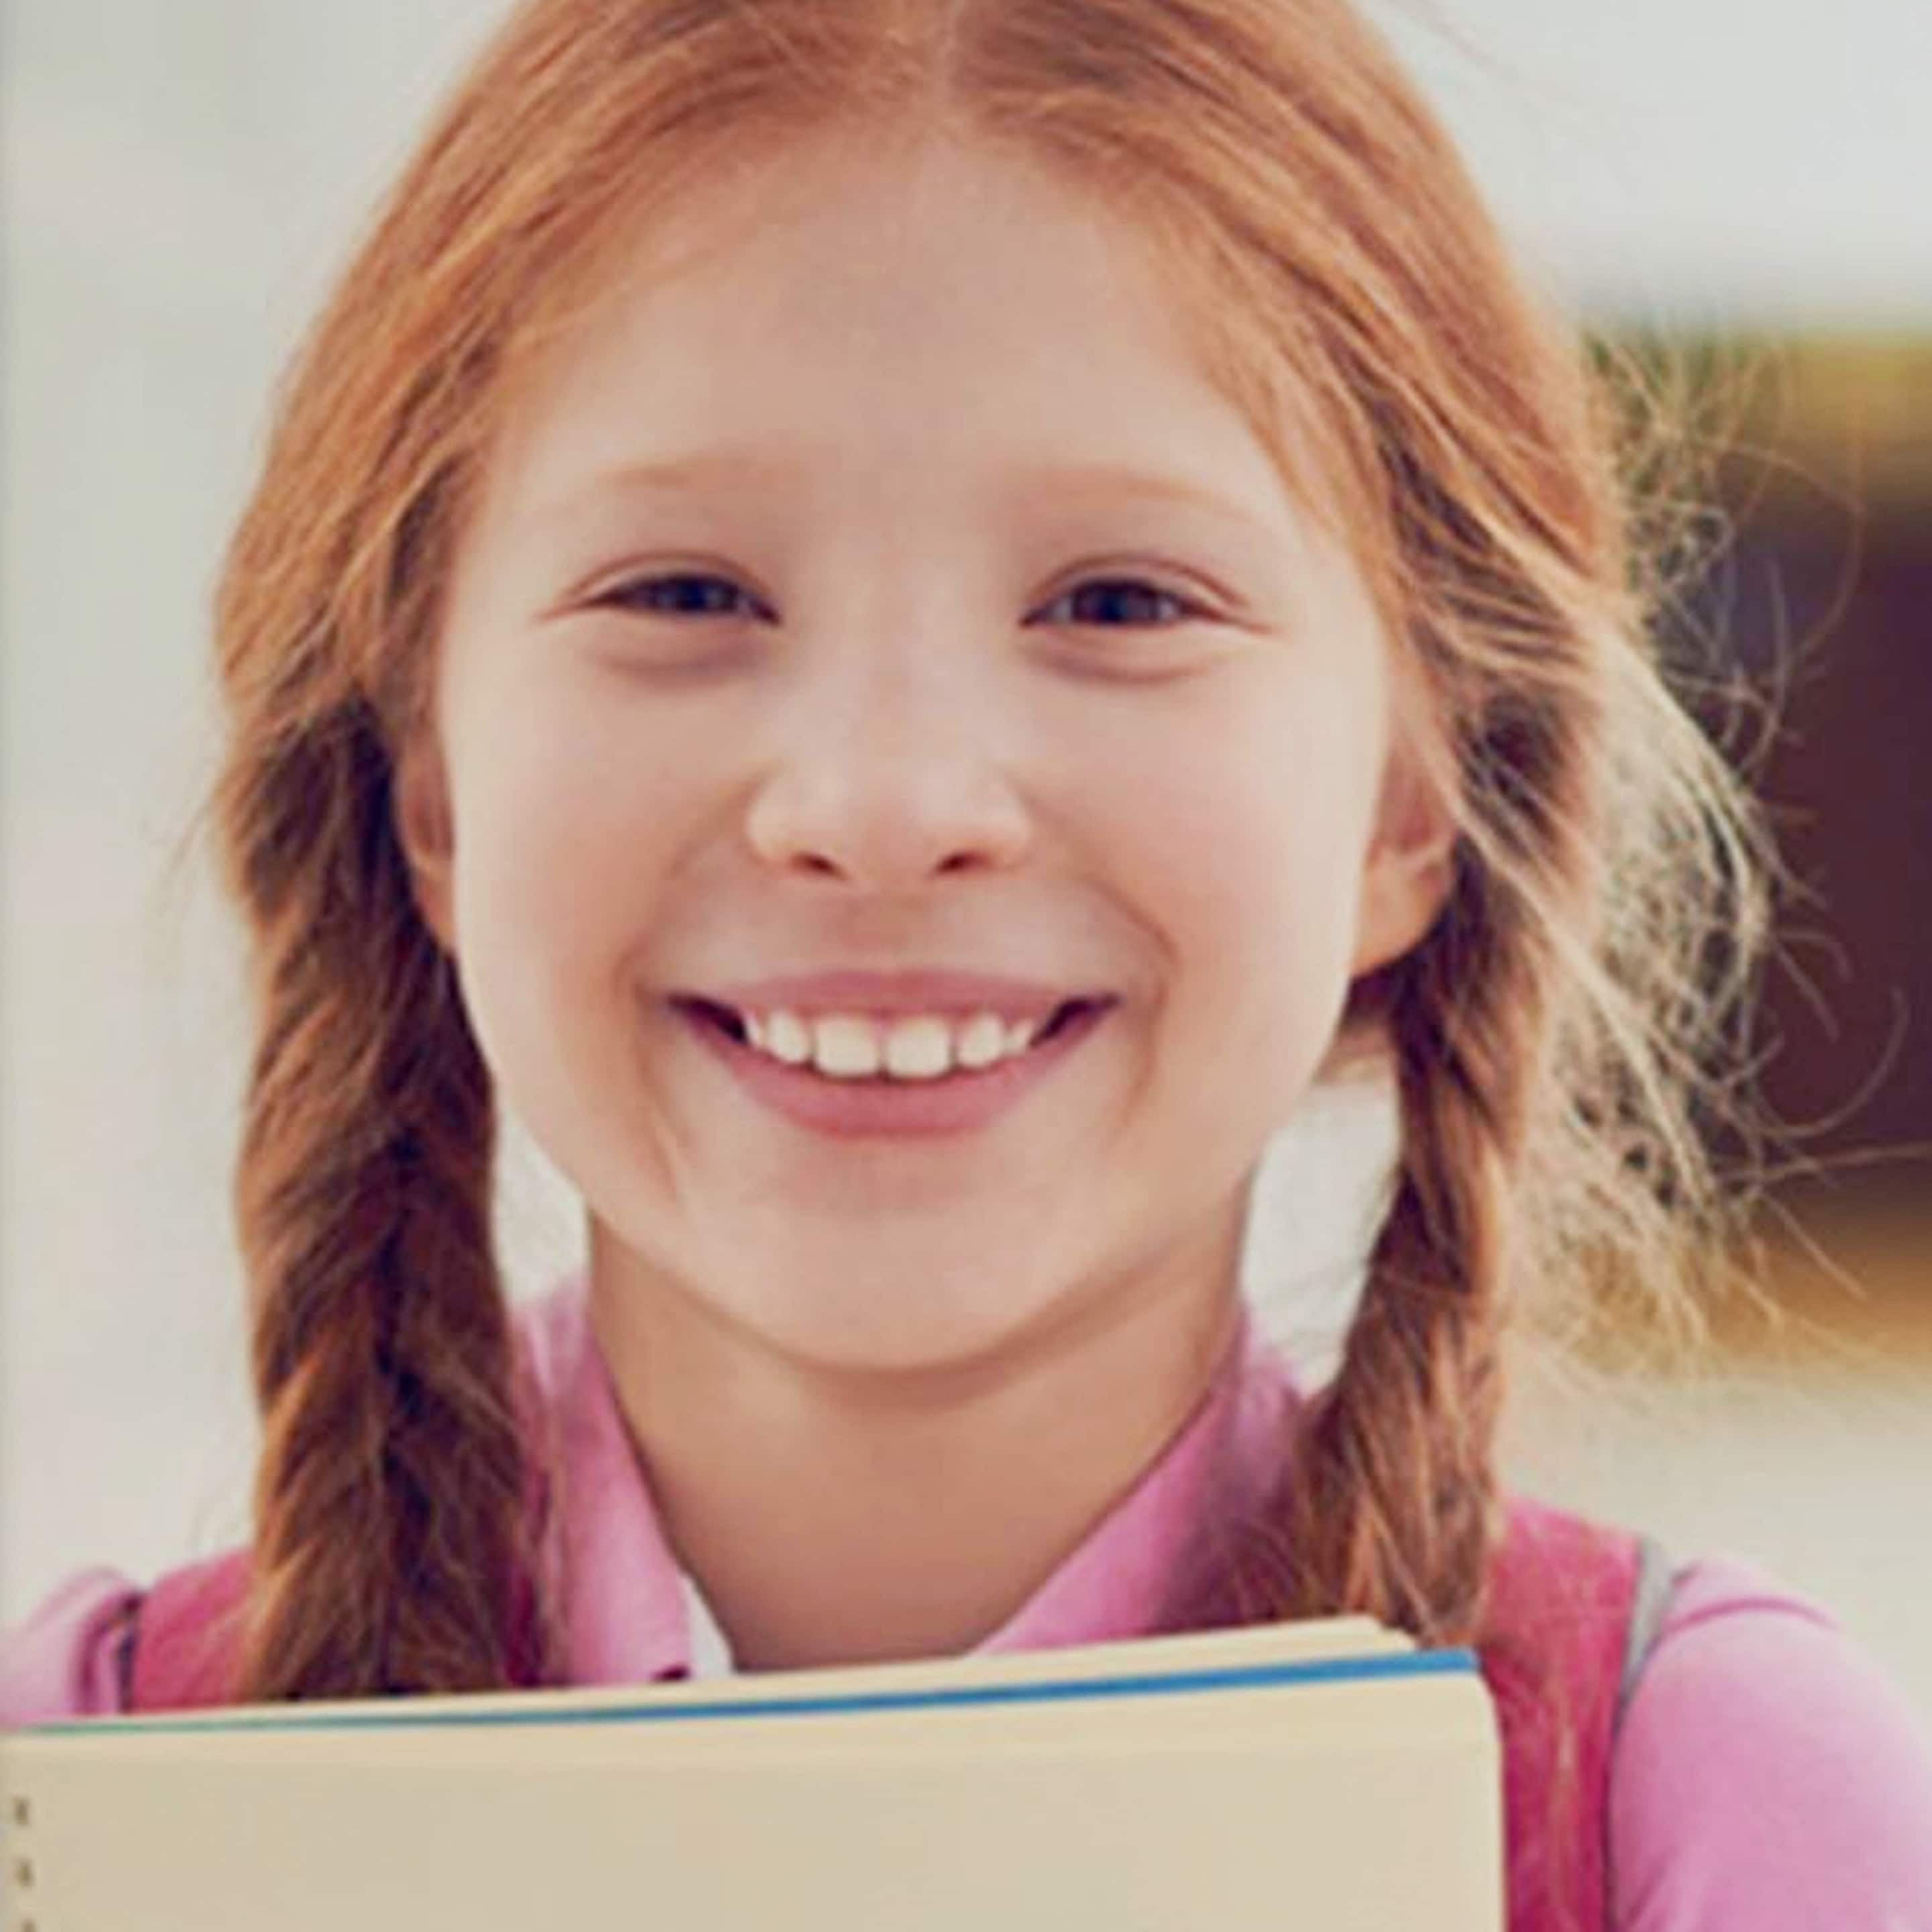 Young girl smiling at the camera holding school books